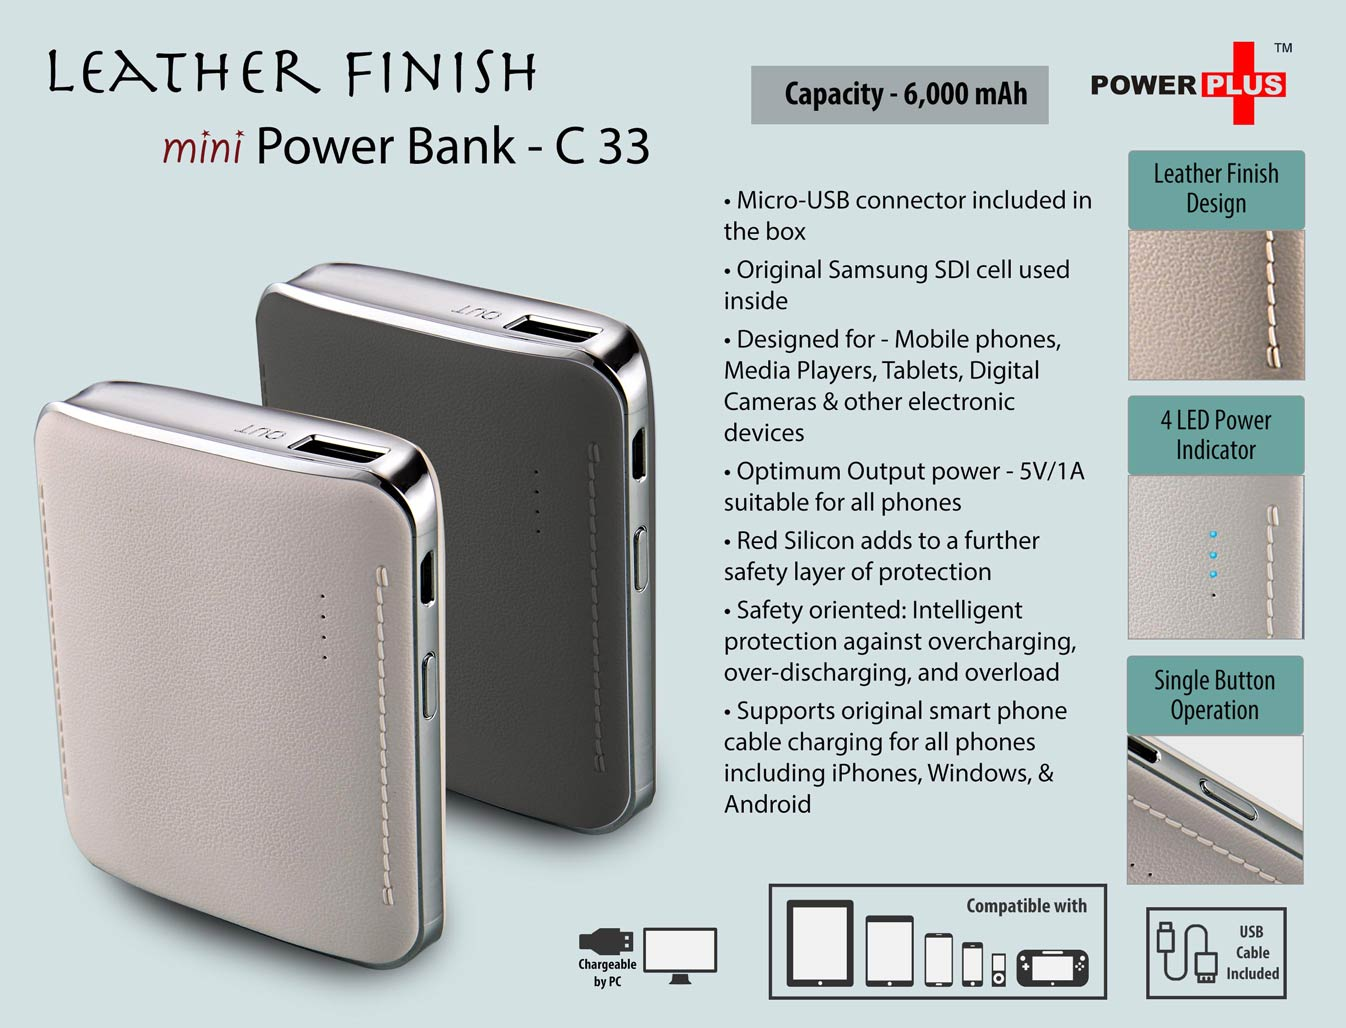 C33 - Leather Finish Mini Power Bank (6,000 mAh)